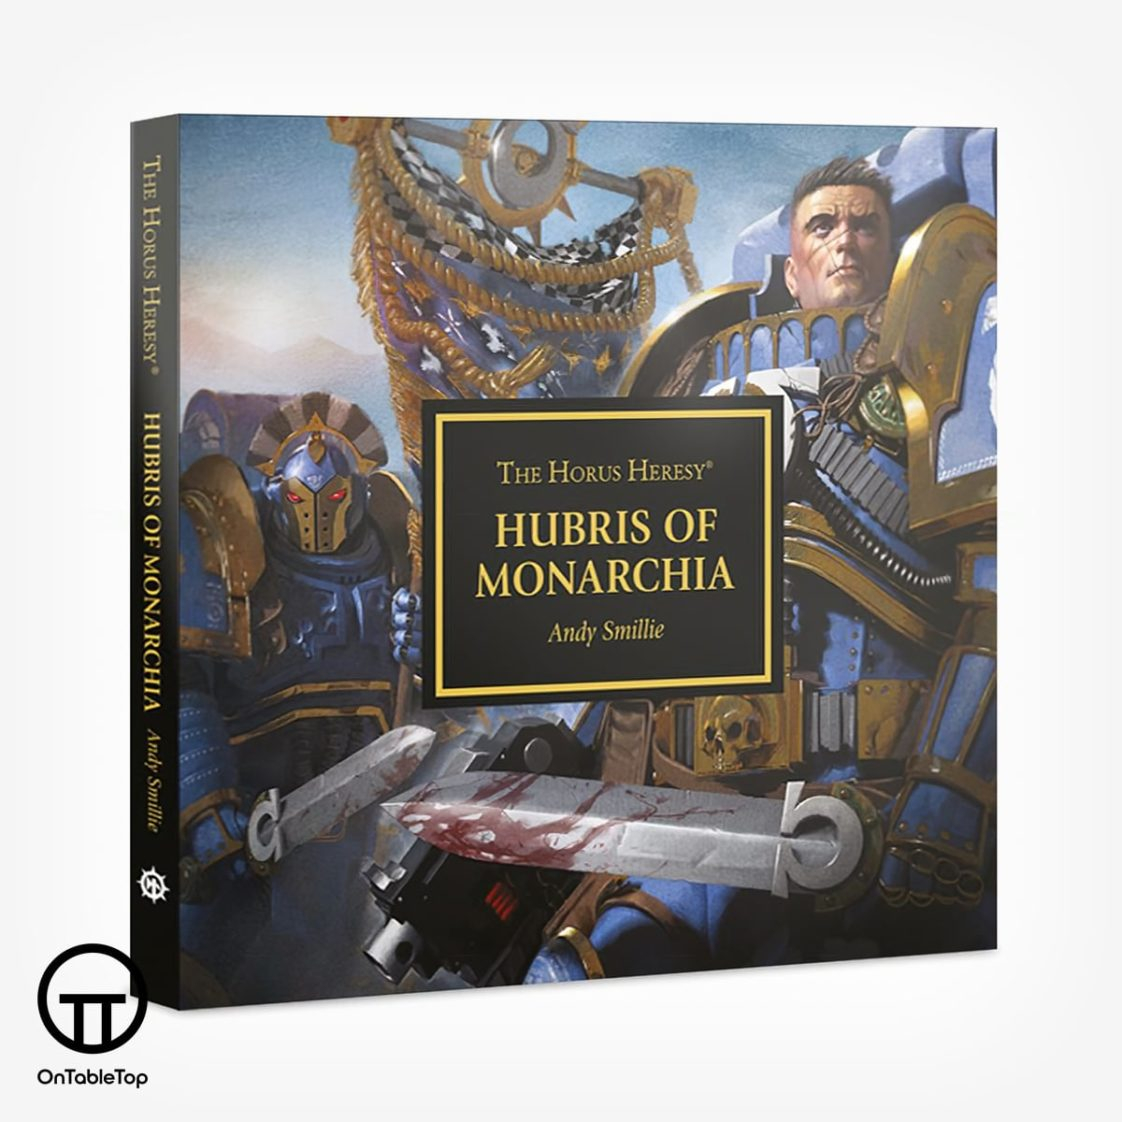 HORUS HERESY: HUBRIS OF MONARCHIA (AUDIOBOOK)